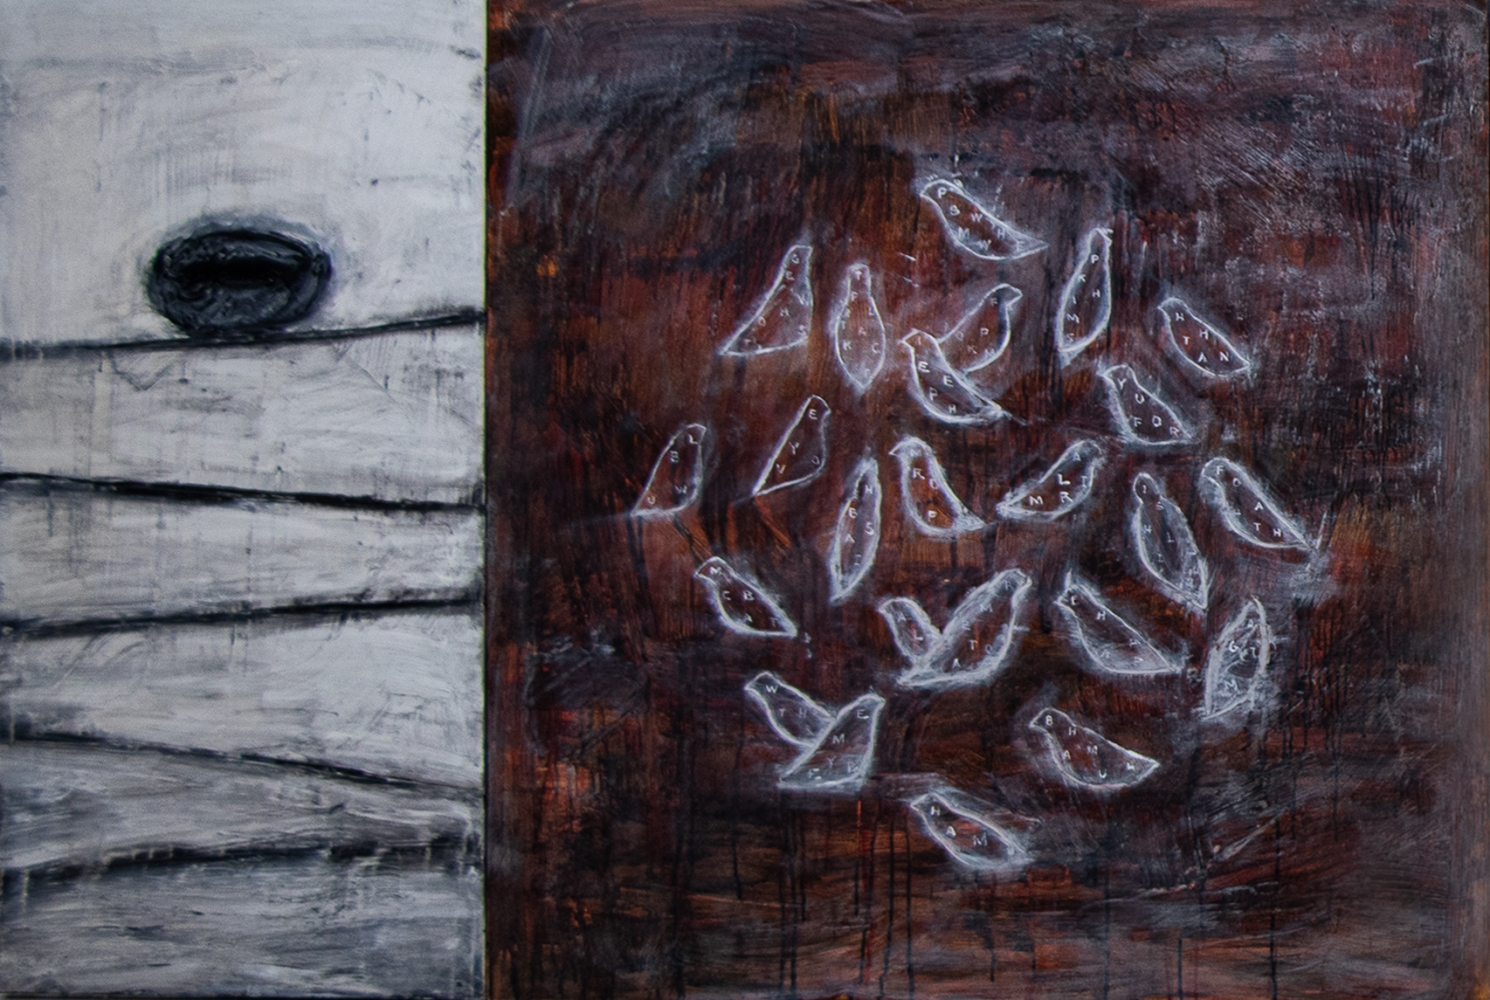 """Connie Lloveras, Nest on Wires and Bird Cluster, 2013, Mixed media on canvas, 48"""" x 72"""" inches"""